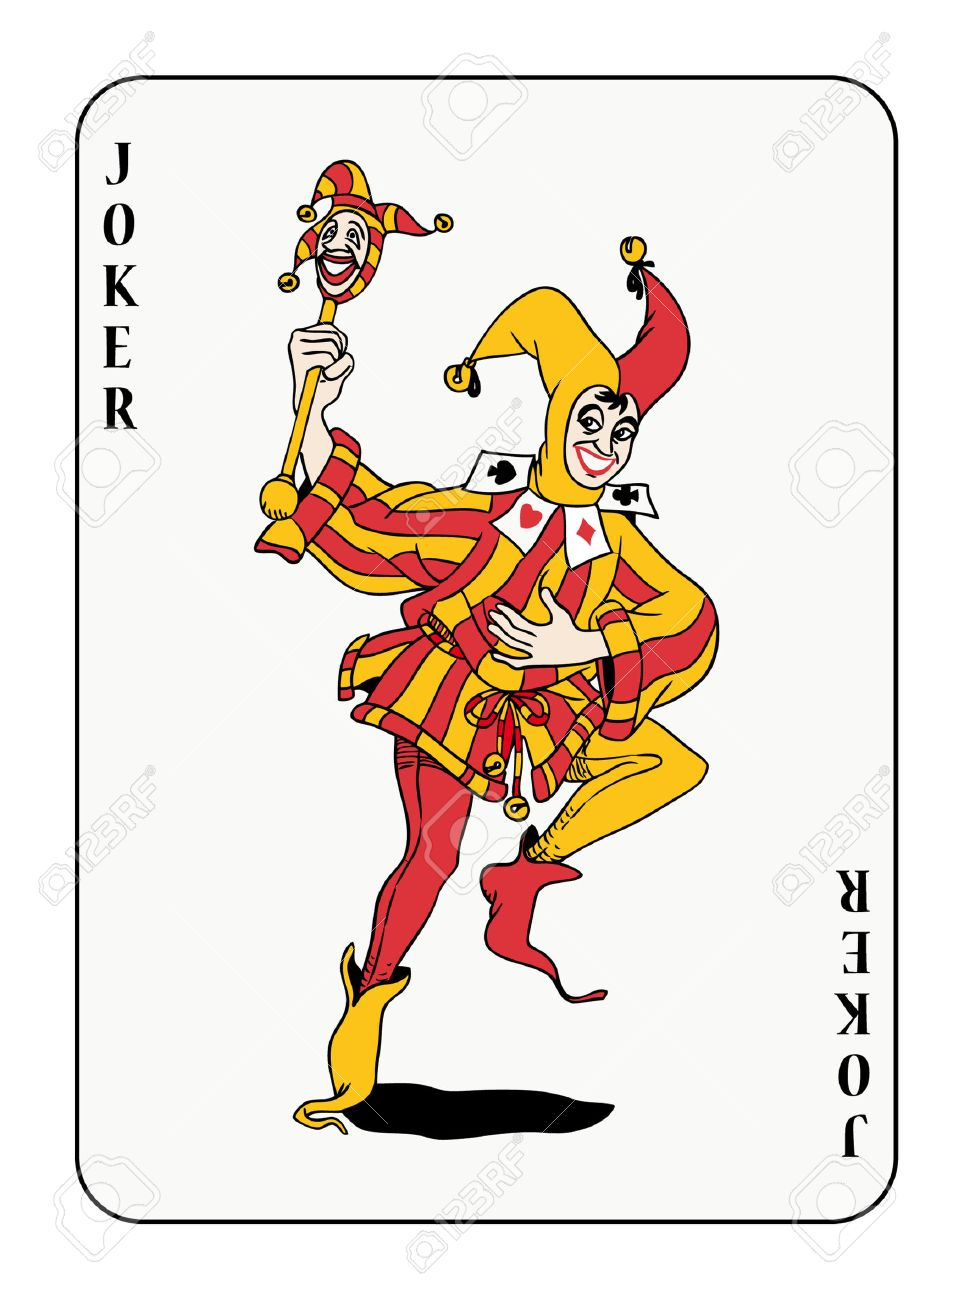 Joker Playing Card Royalty Free Cliparts, Vectors, And Stock ...